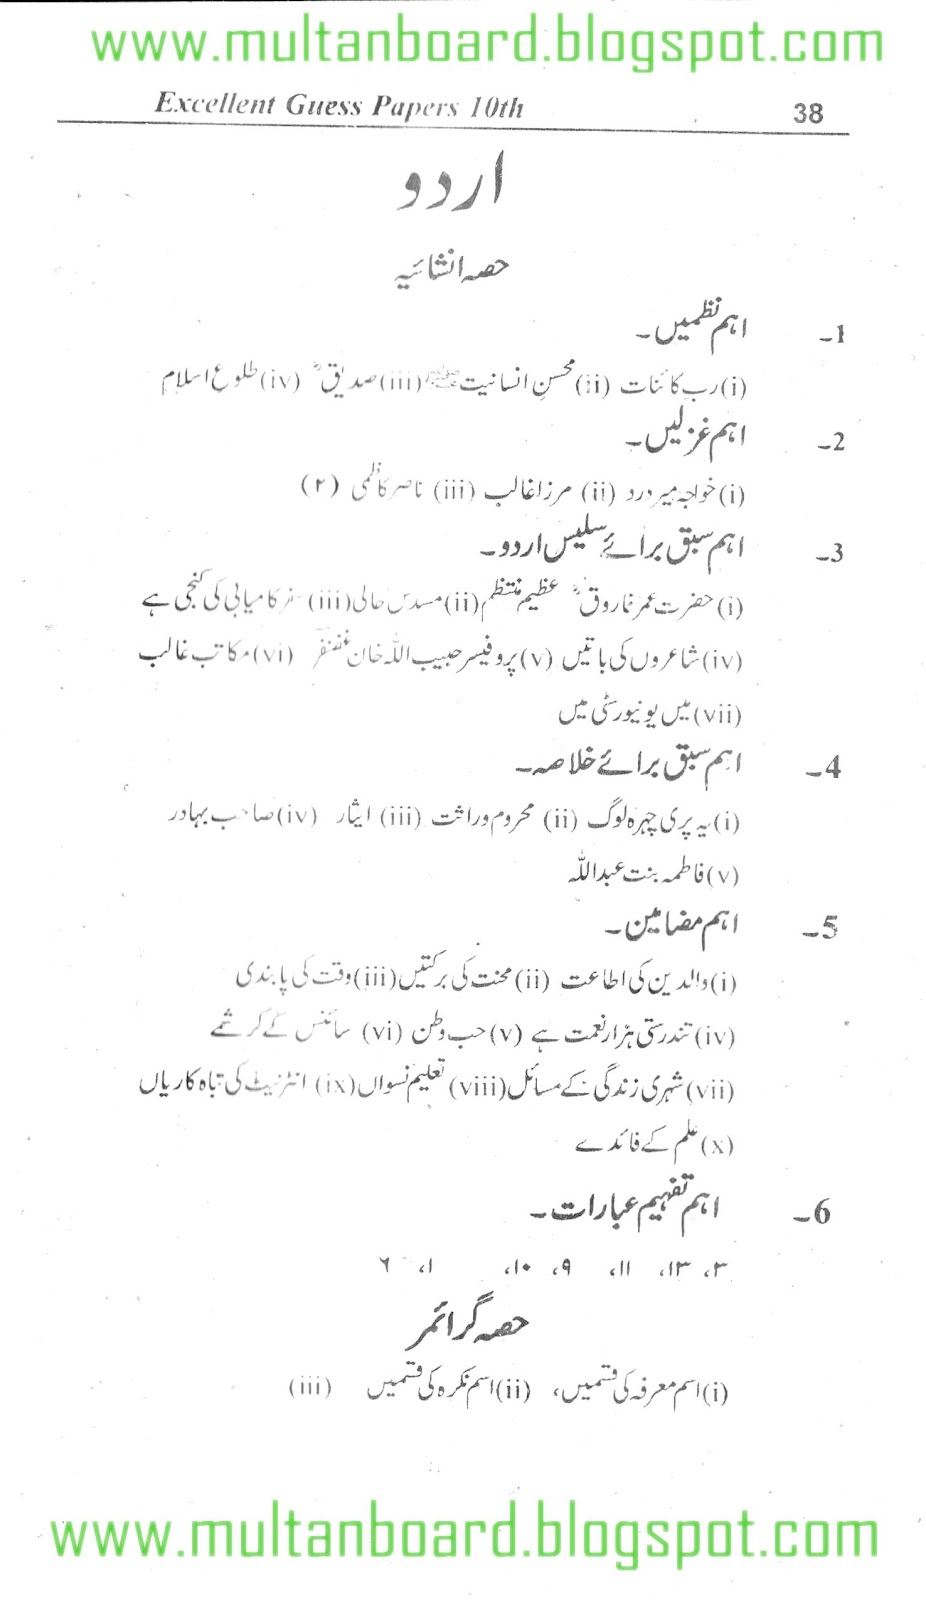 Verification in urdu